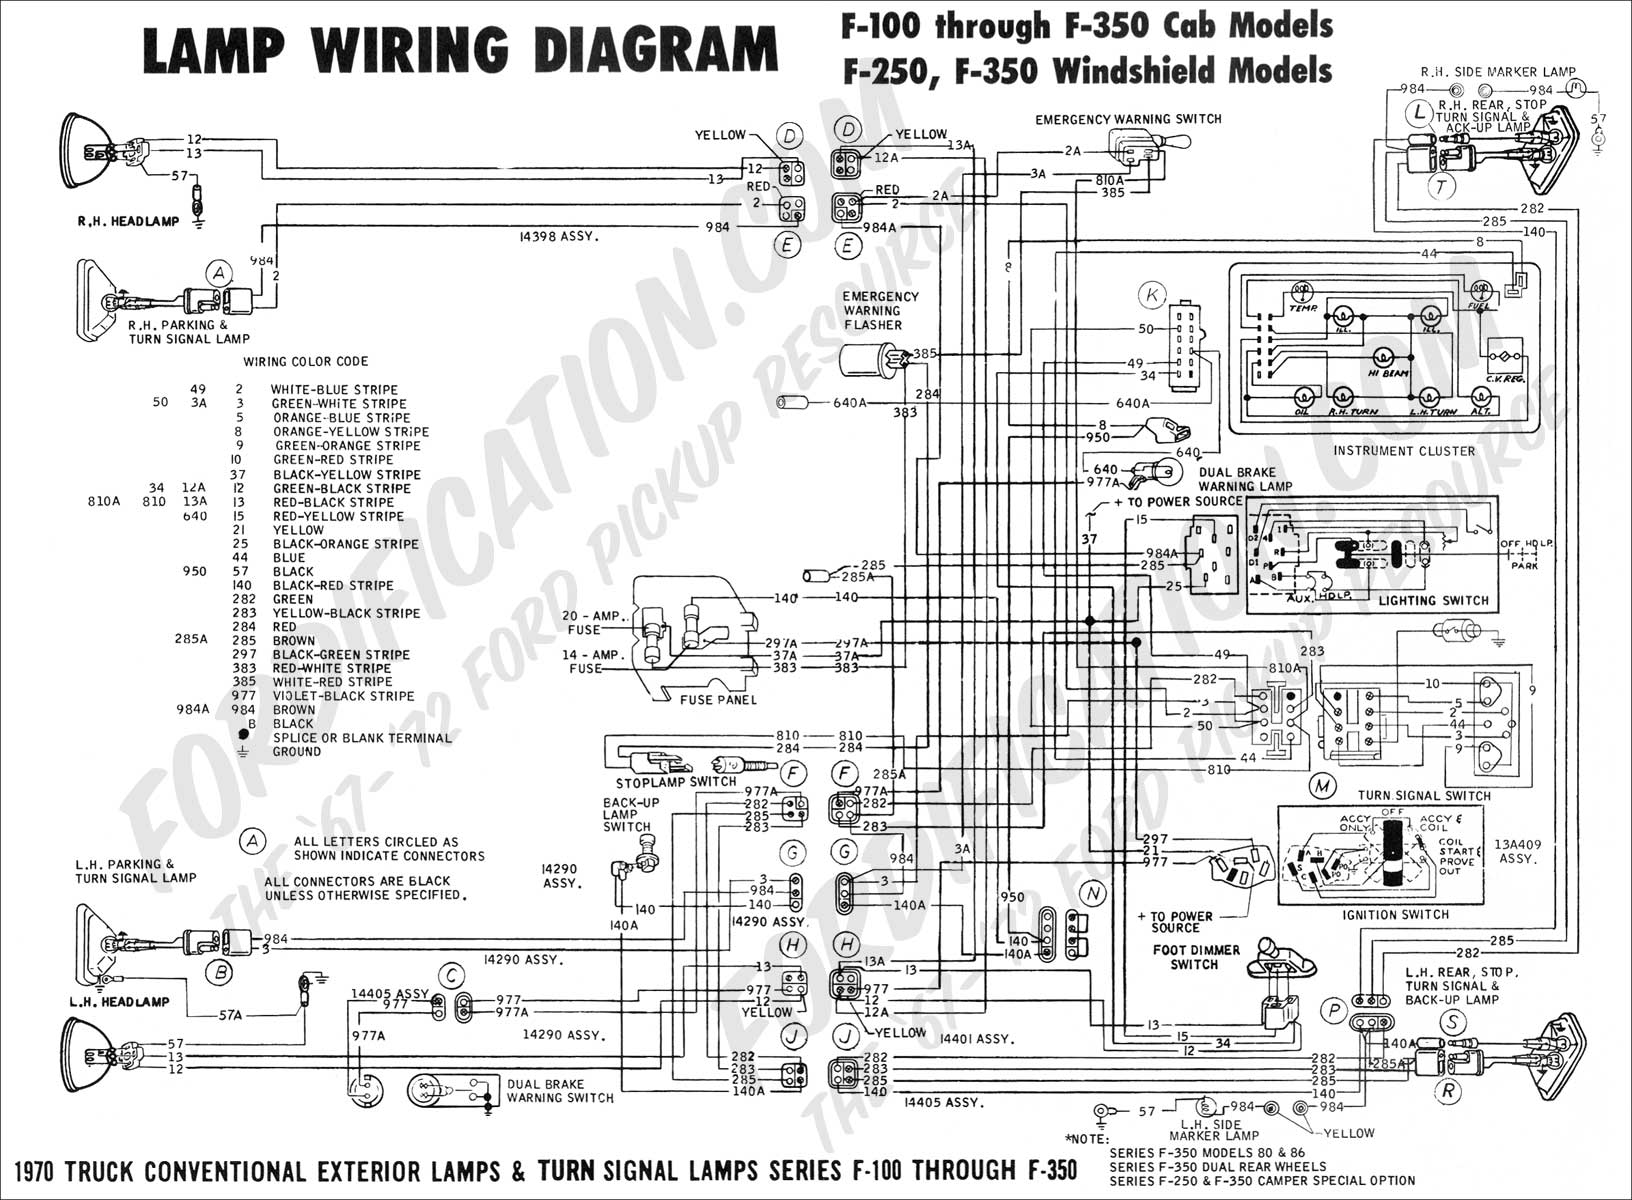 wiring diagram_70ext lights01?resize=665%2C489 wiring harness diagram for 4610 ford tractor the wiring diagram ford wiring harness diagrams at readyjetset.co